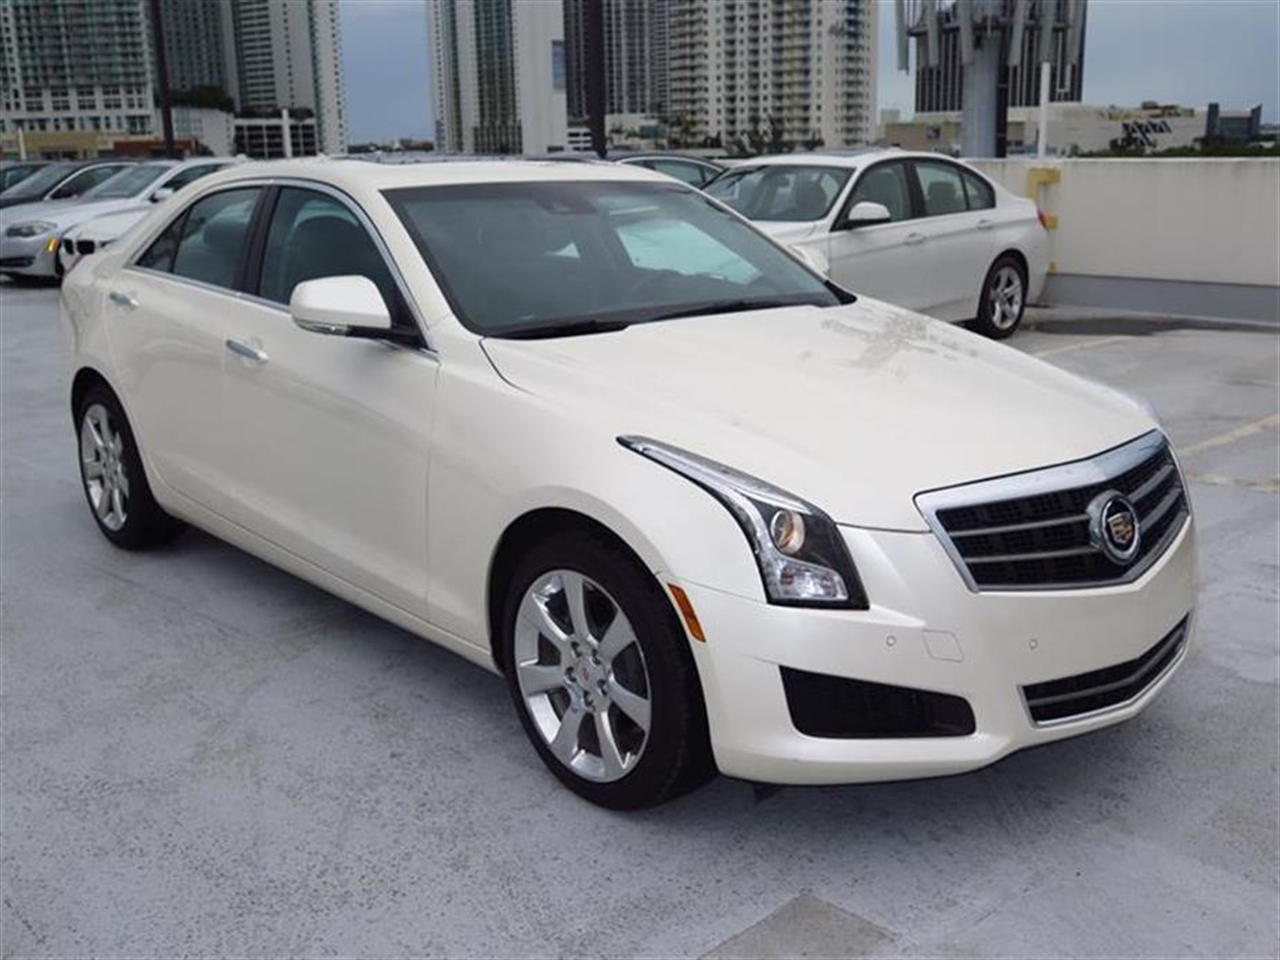 2014 CADILLAC ATS 4dr Sdn 20L Luxury AWD 5194 miles Adaptive Remote Start Air filtration system